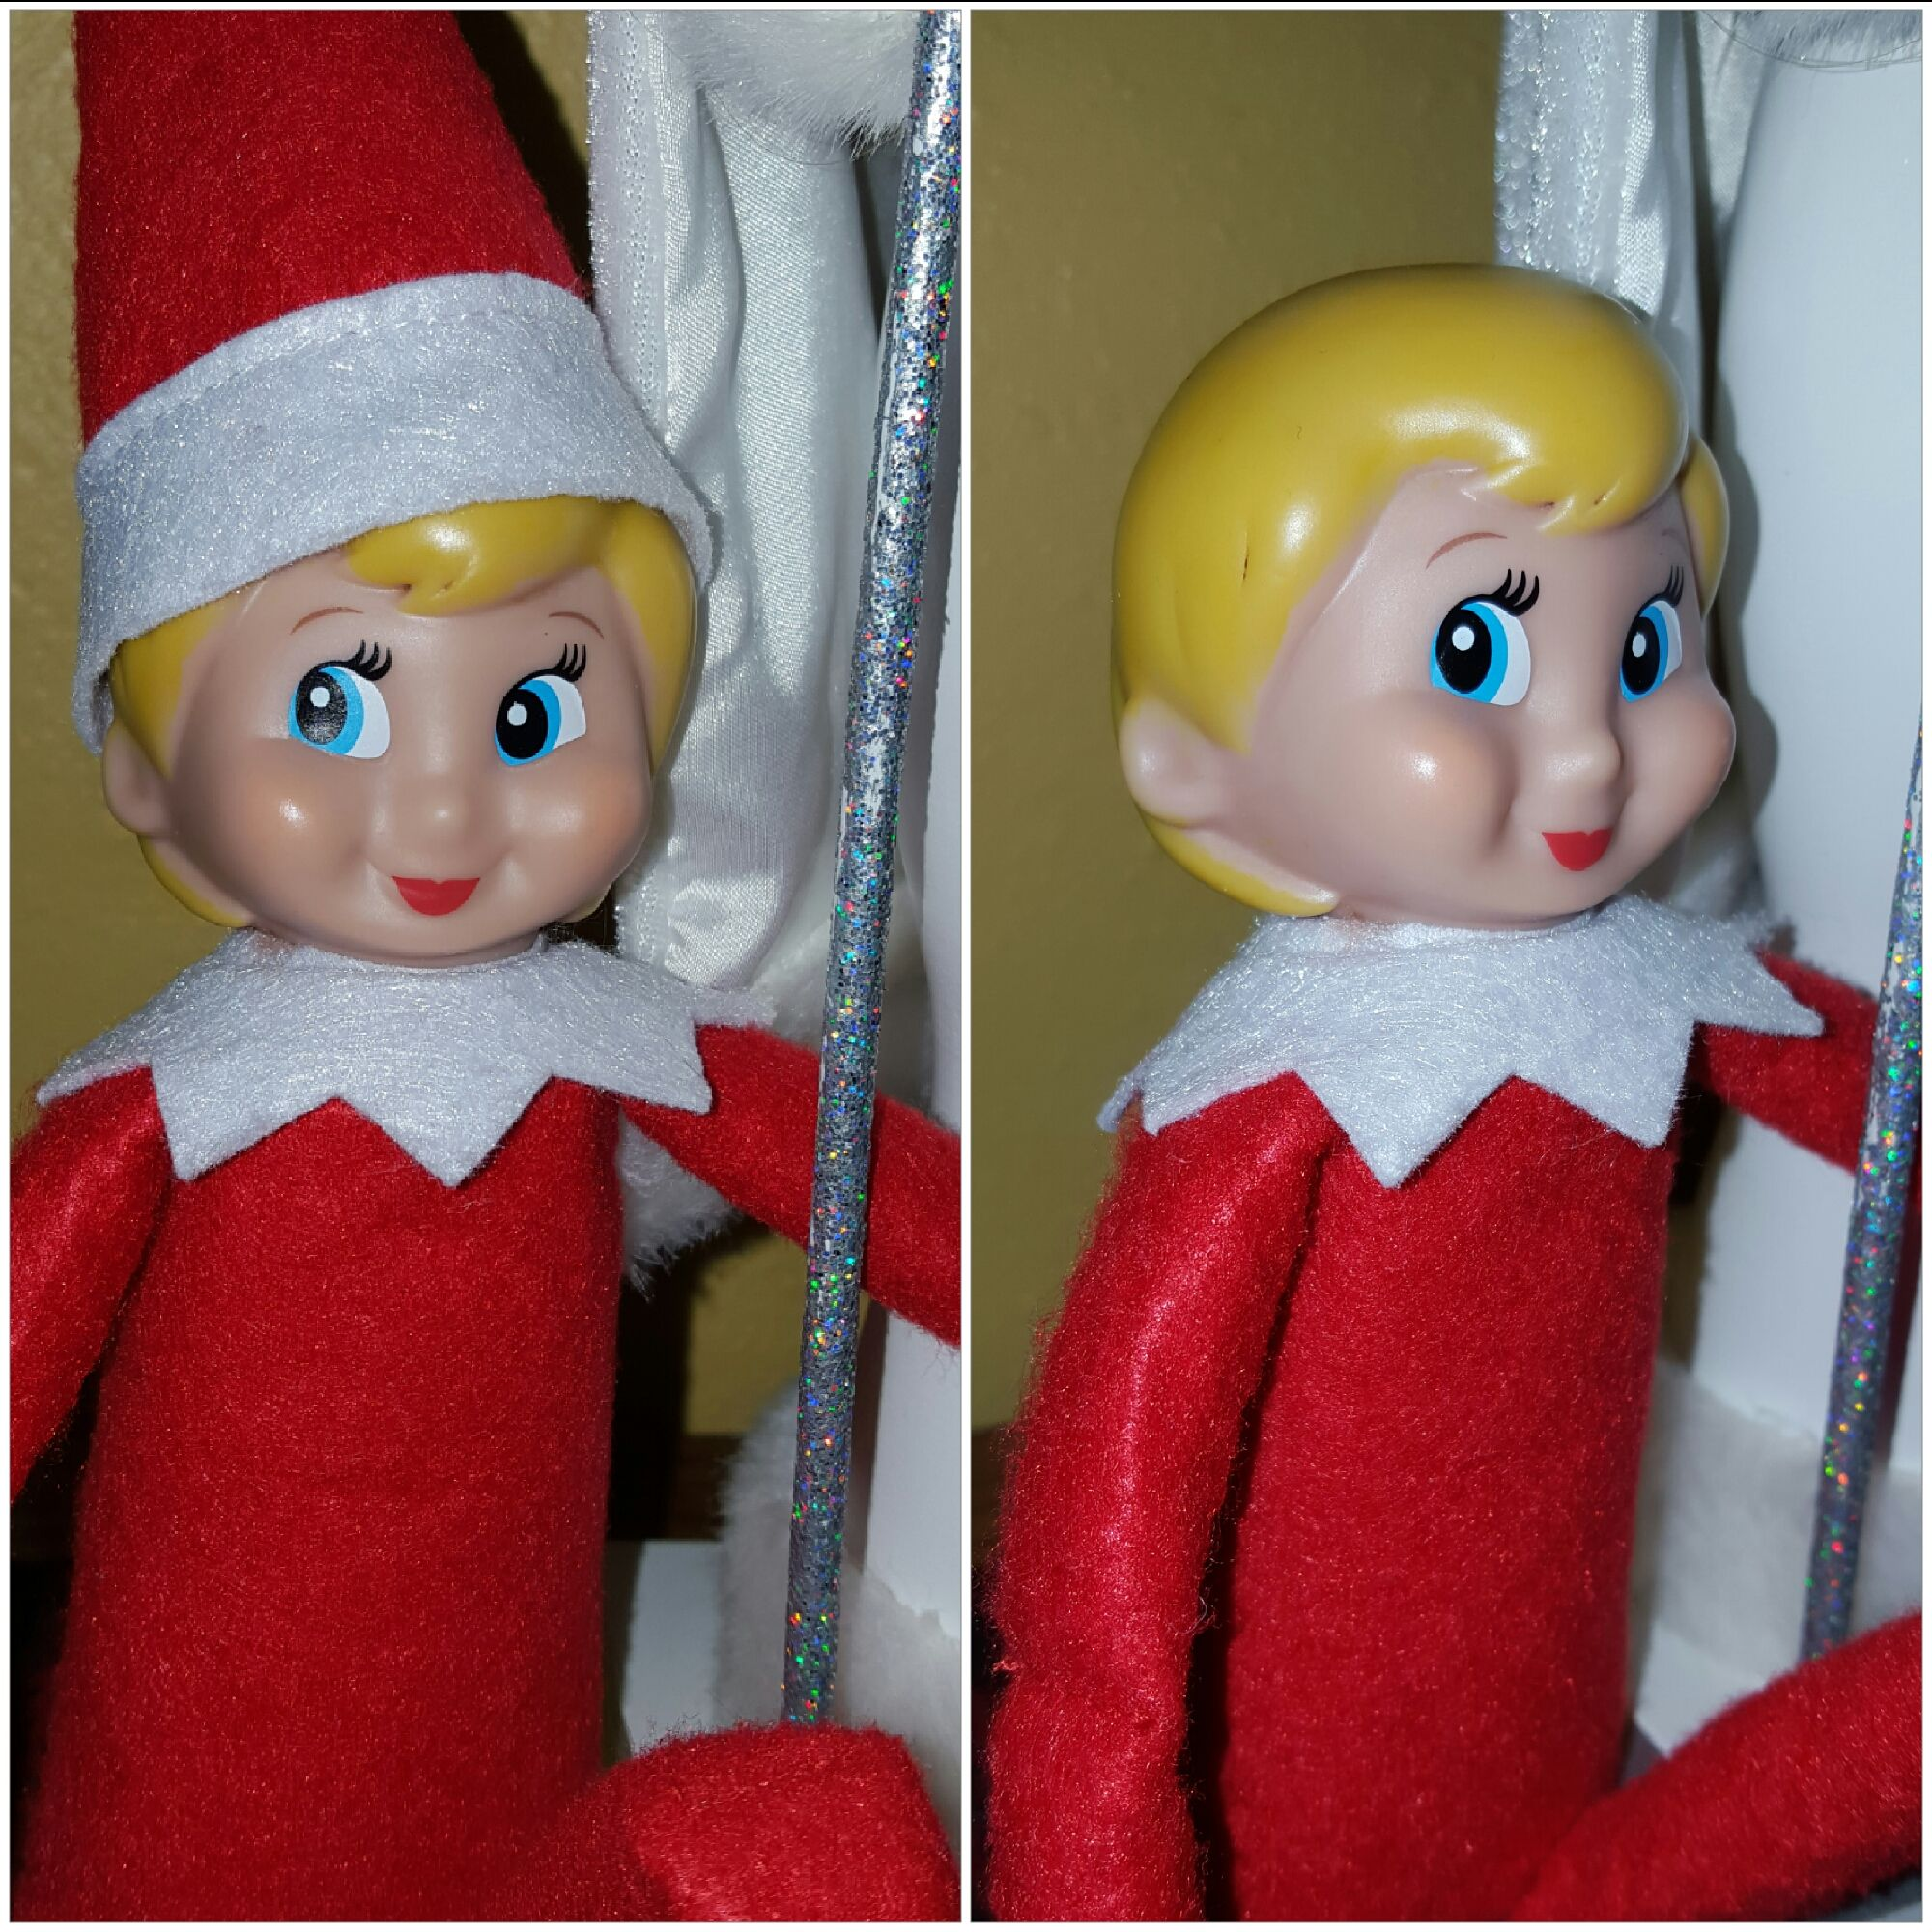 How To Change Hair Color For Elf On The Shelf Use